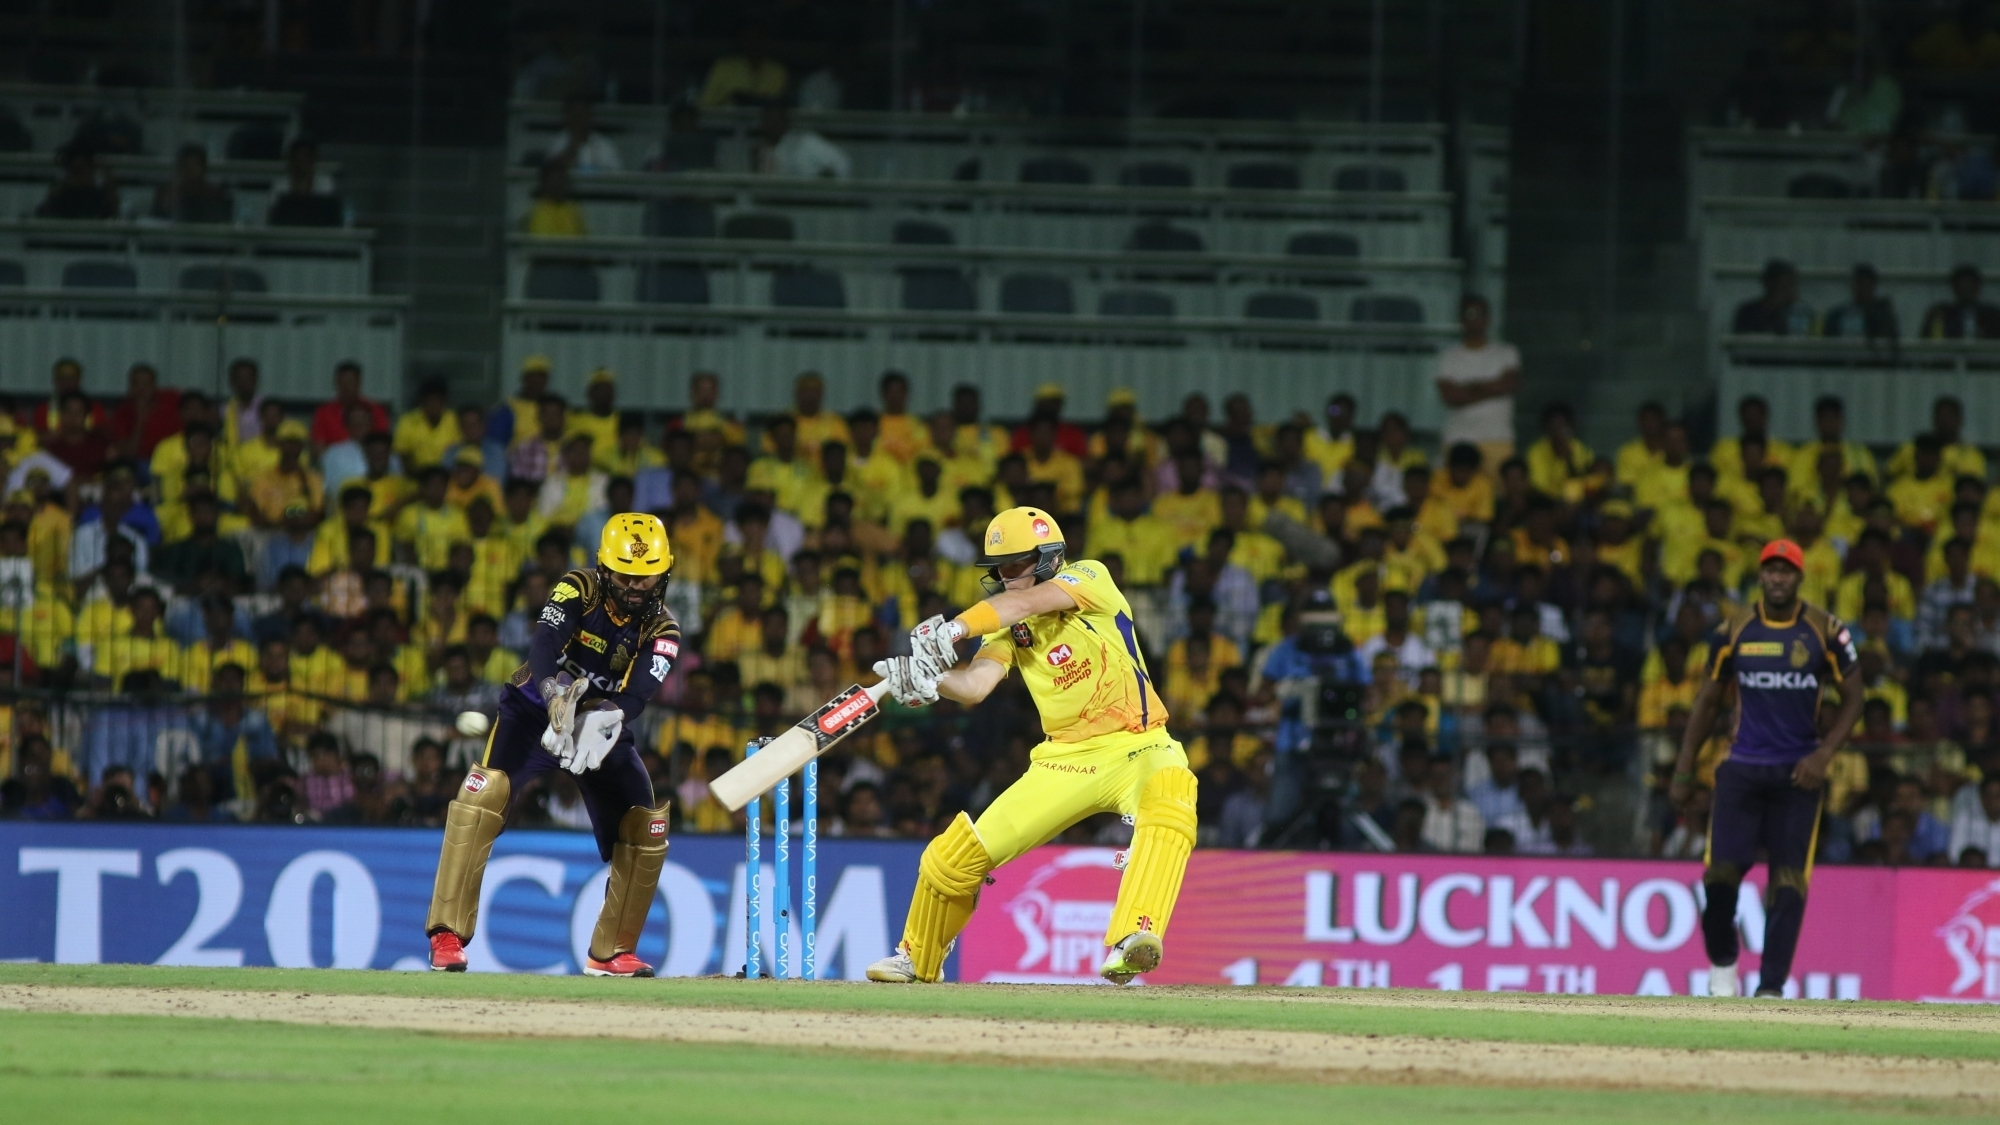 IPL 2018: It means a lot to me and to the team says CSK's matchwinner Sam Billings